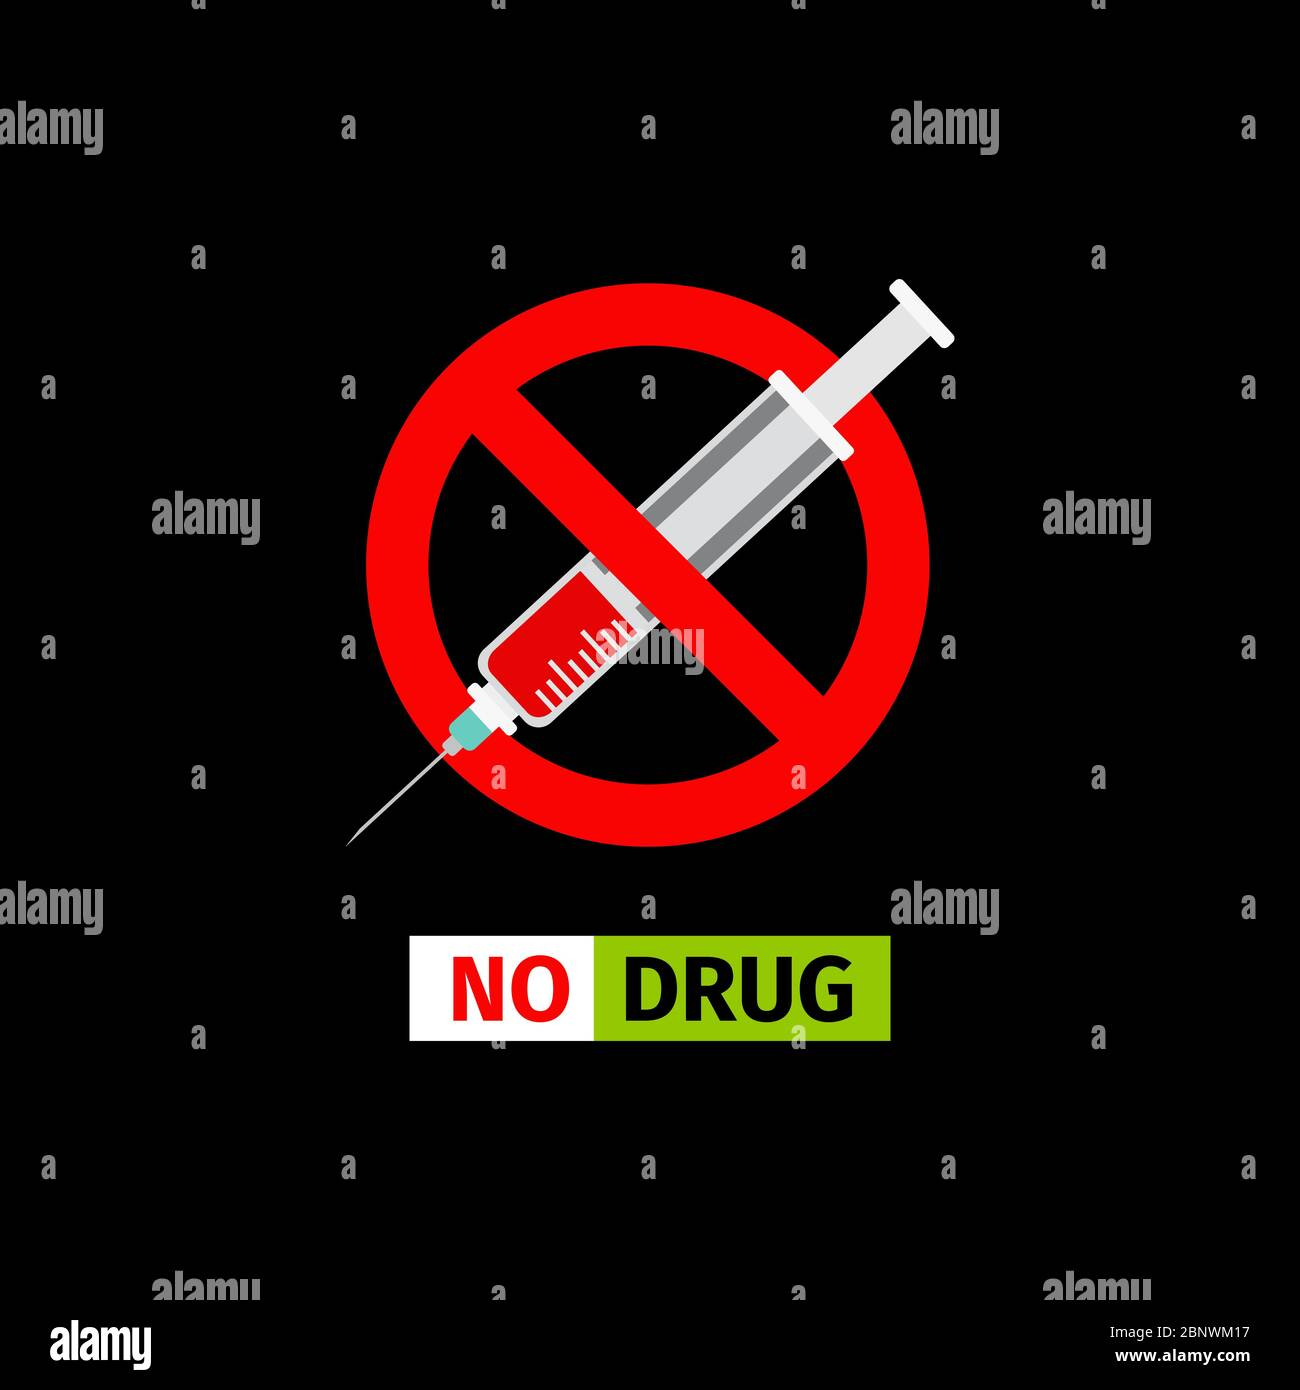 vector forbidding sign on the black background no drugs stock vector image art alamy https www alamy com vector forbidding sign on the black background no drugs image357679651 html